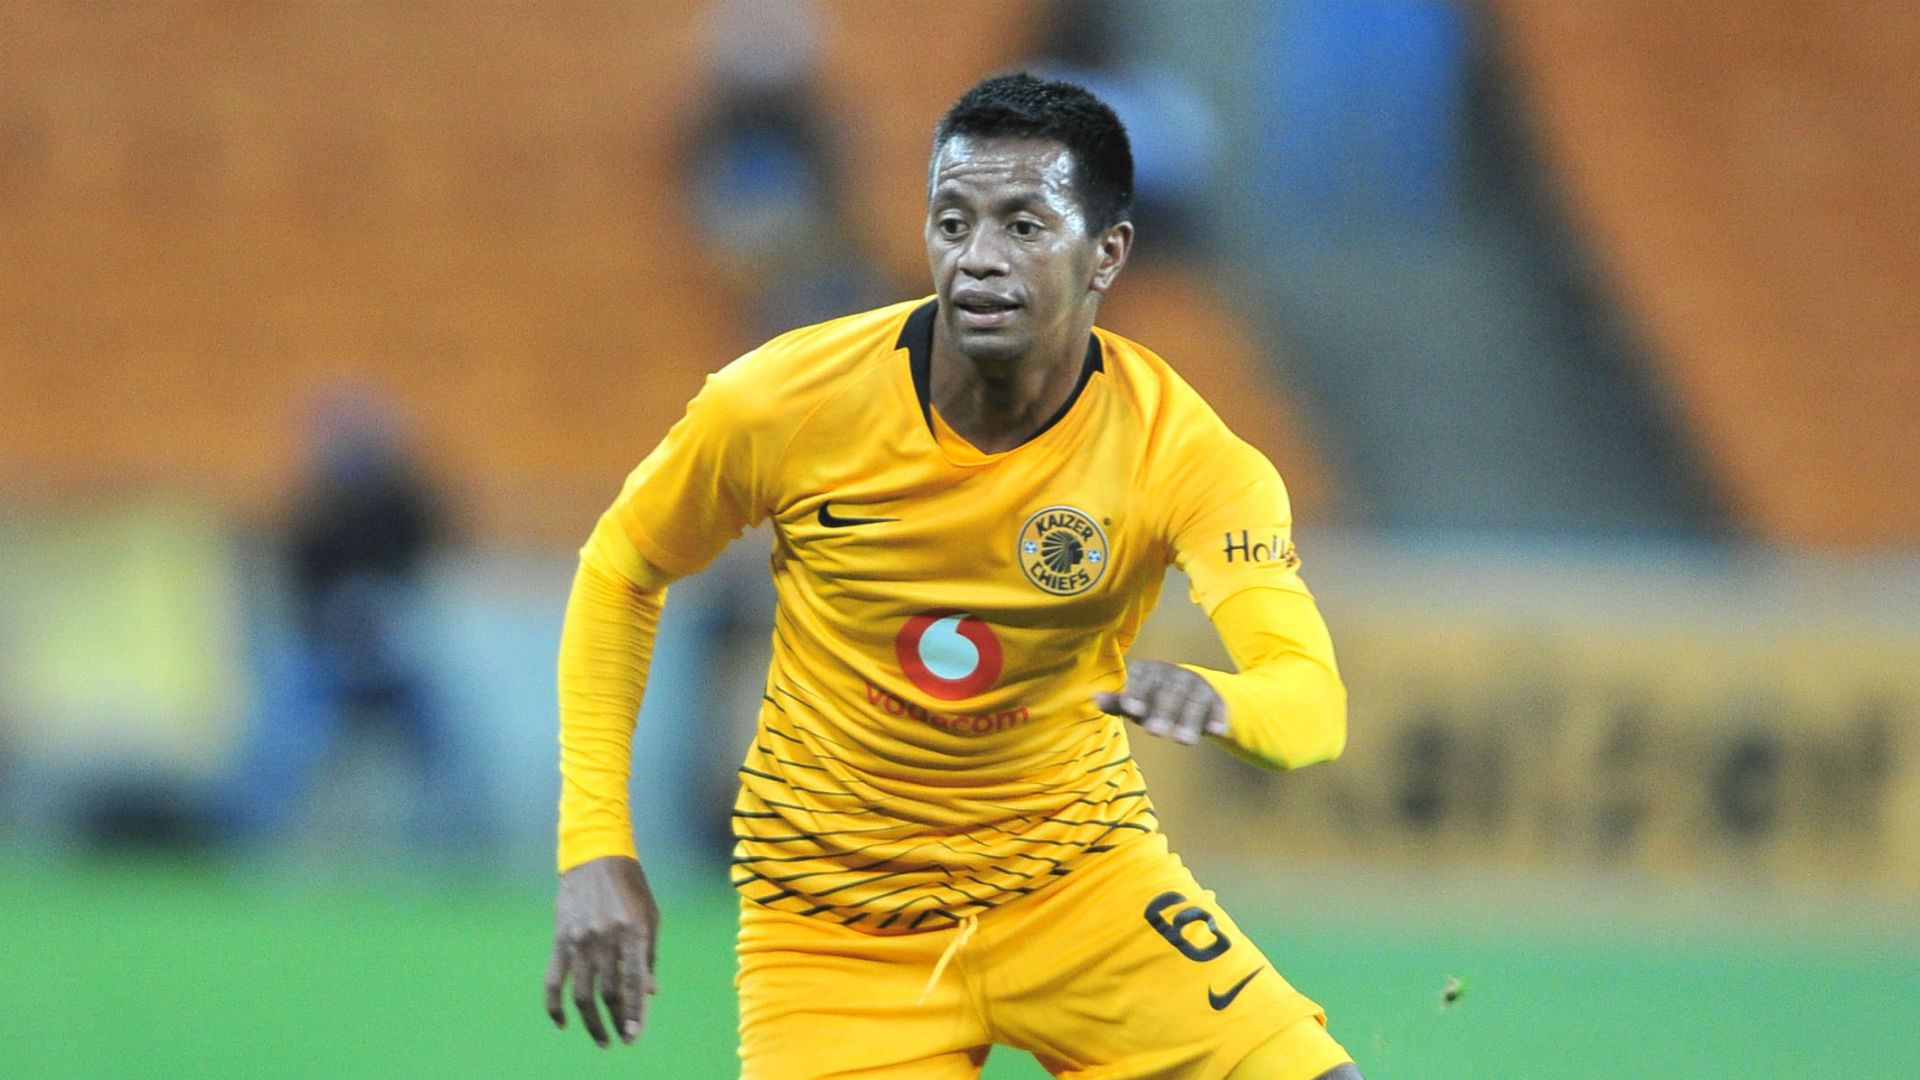 Black Leopards excited Dax is now eligible - Clark confirms ex-Kaizer Chiefs midfielder's availability